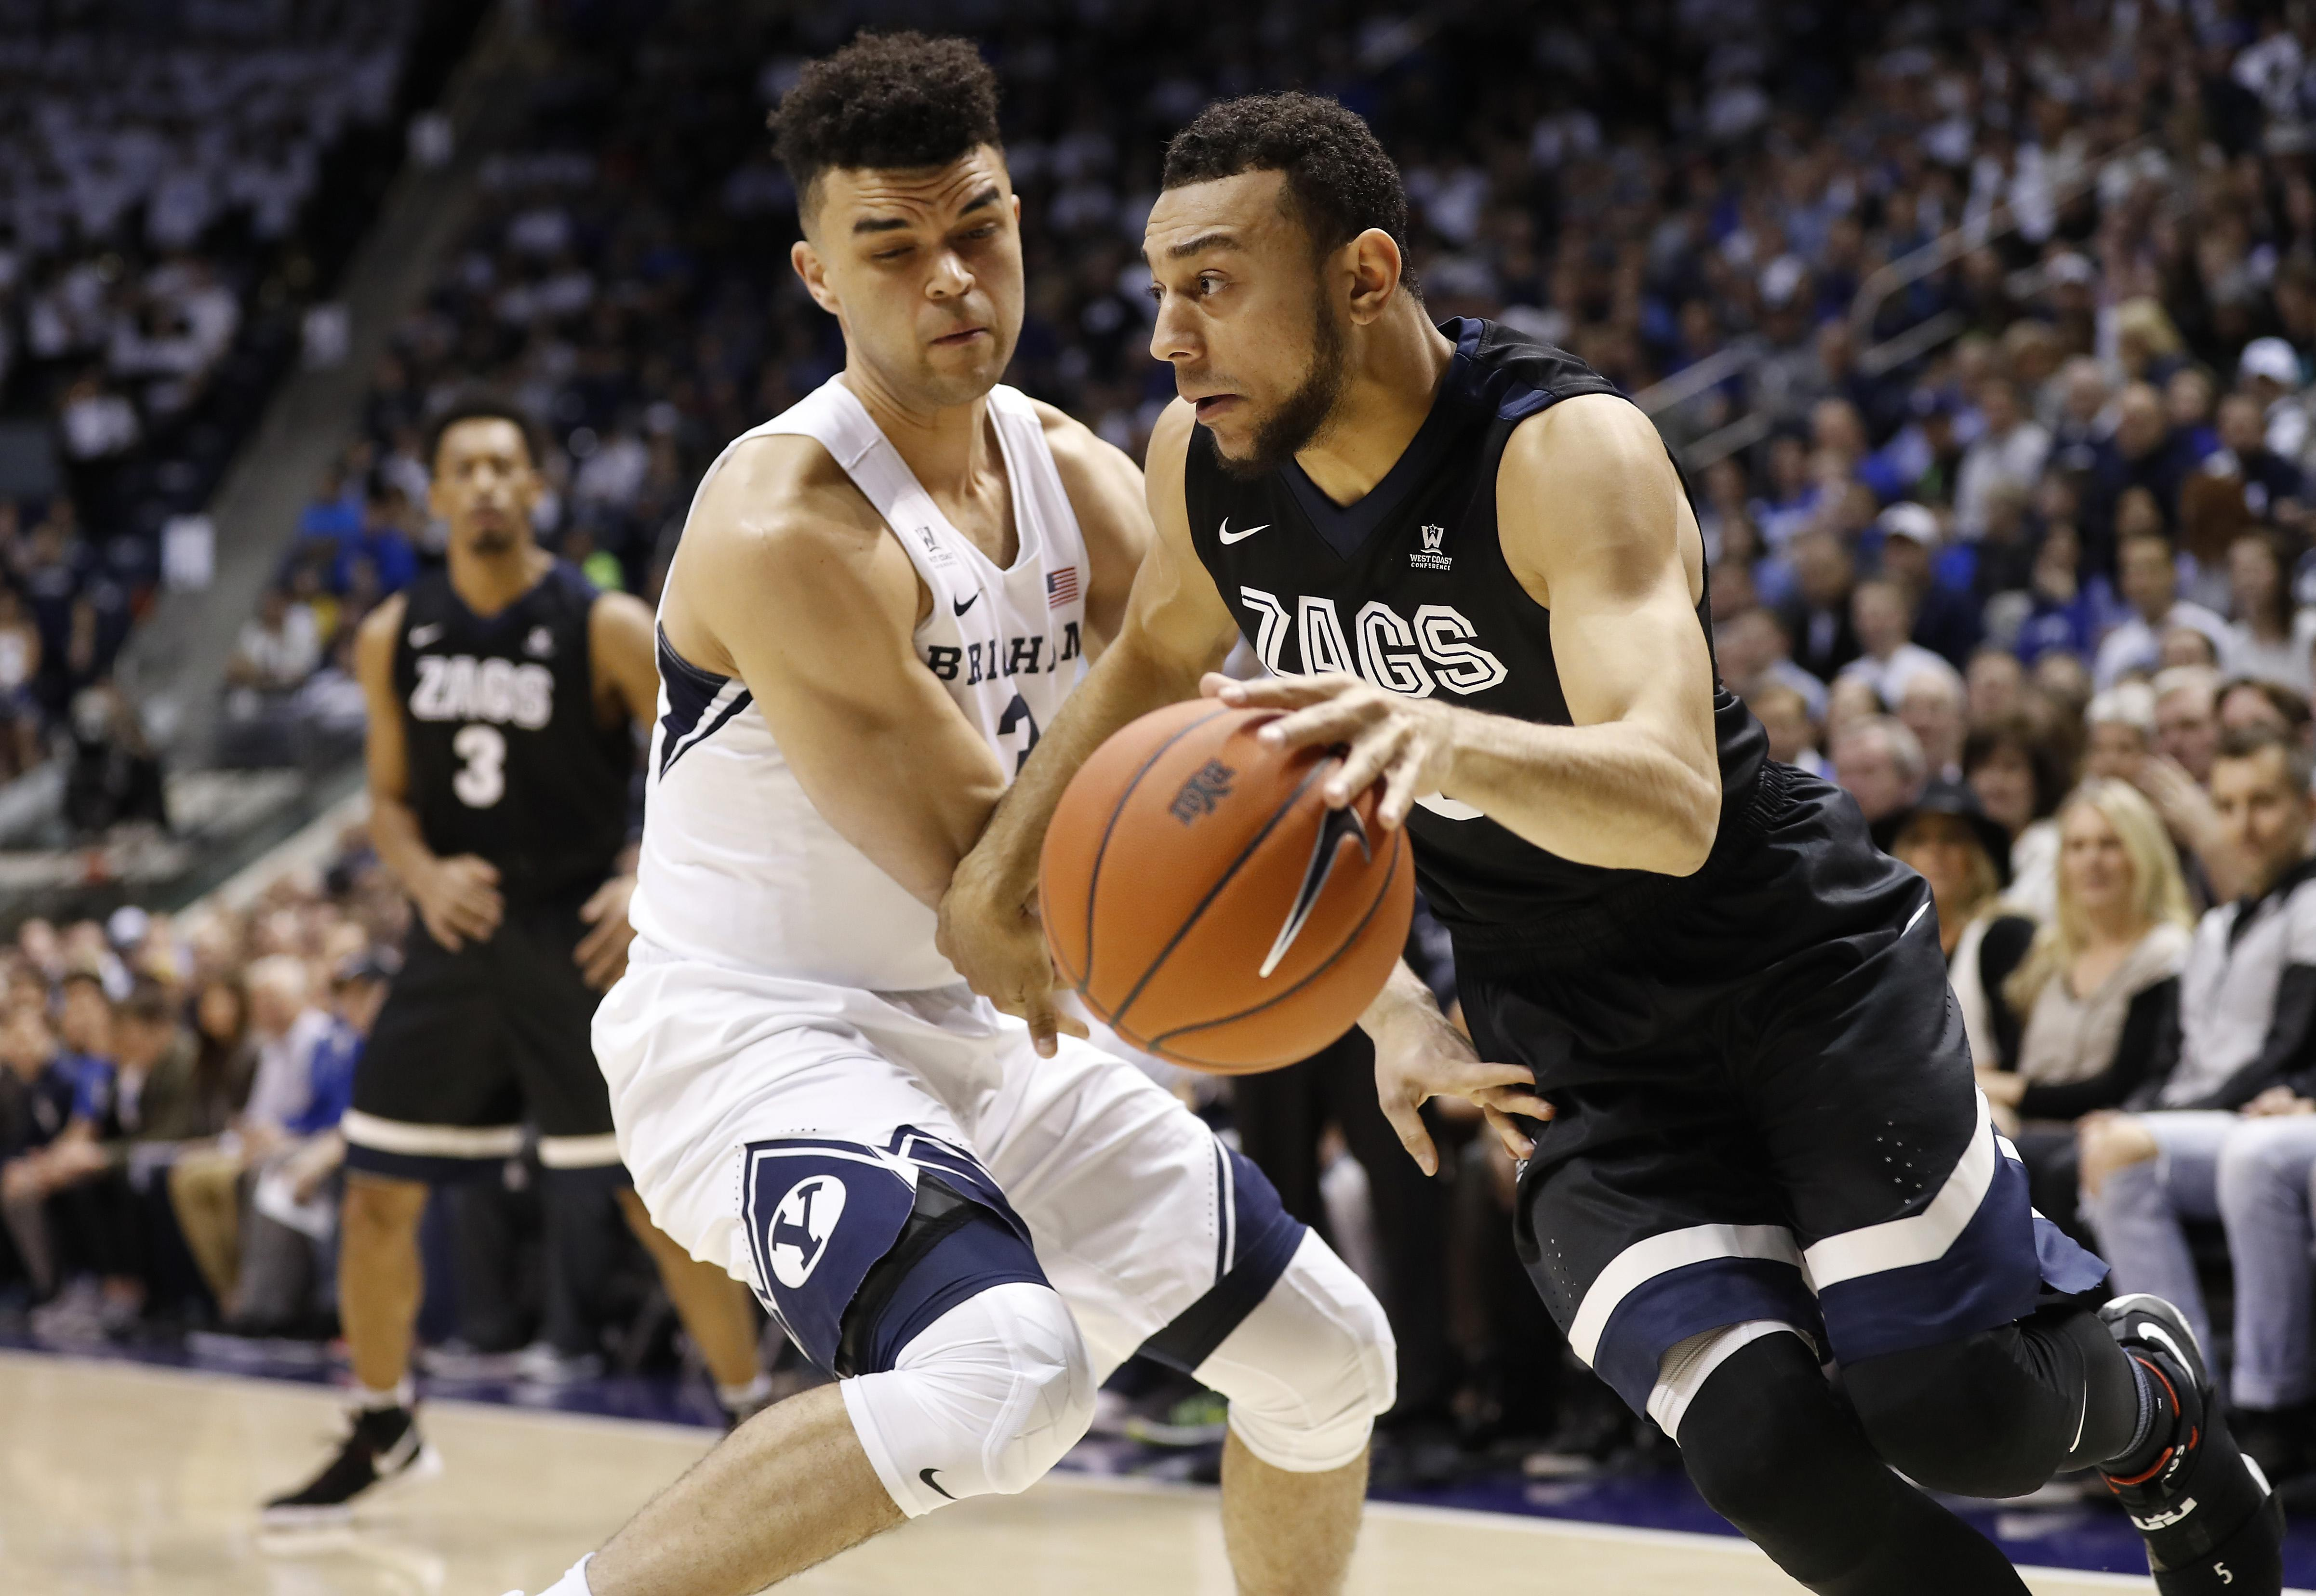 Gonzagas Nigel Williams Goss One Of 15 Finalists For Wooden Award